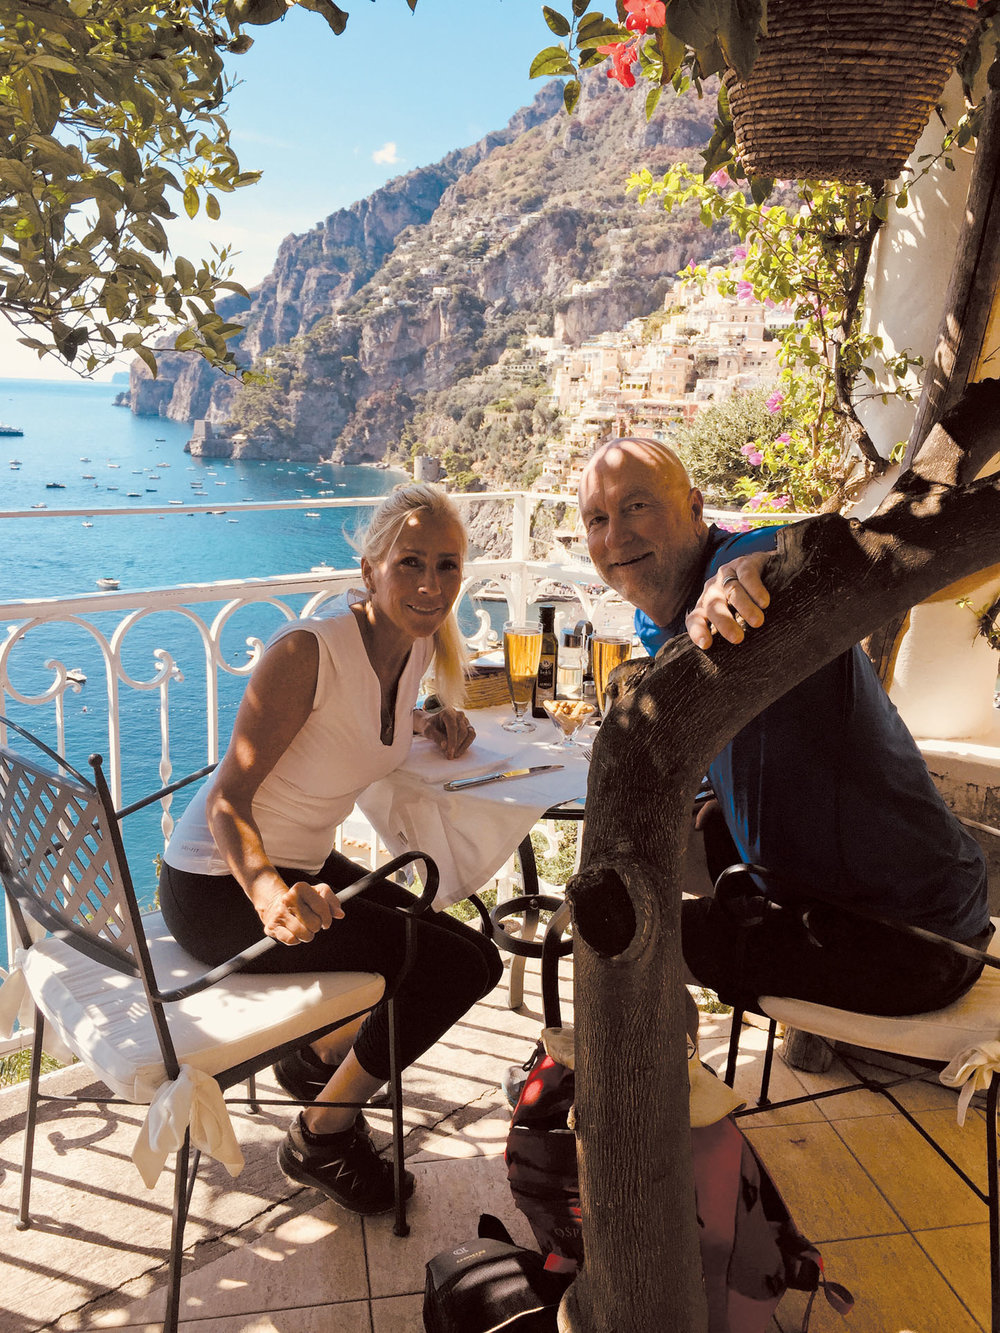 Positano and Peronis post hike.